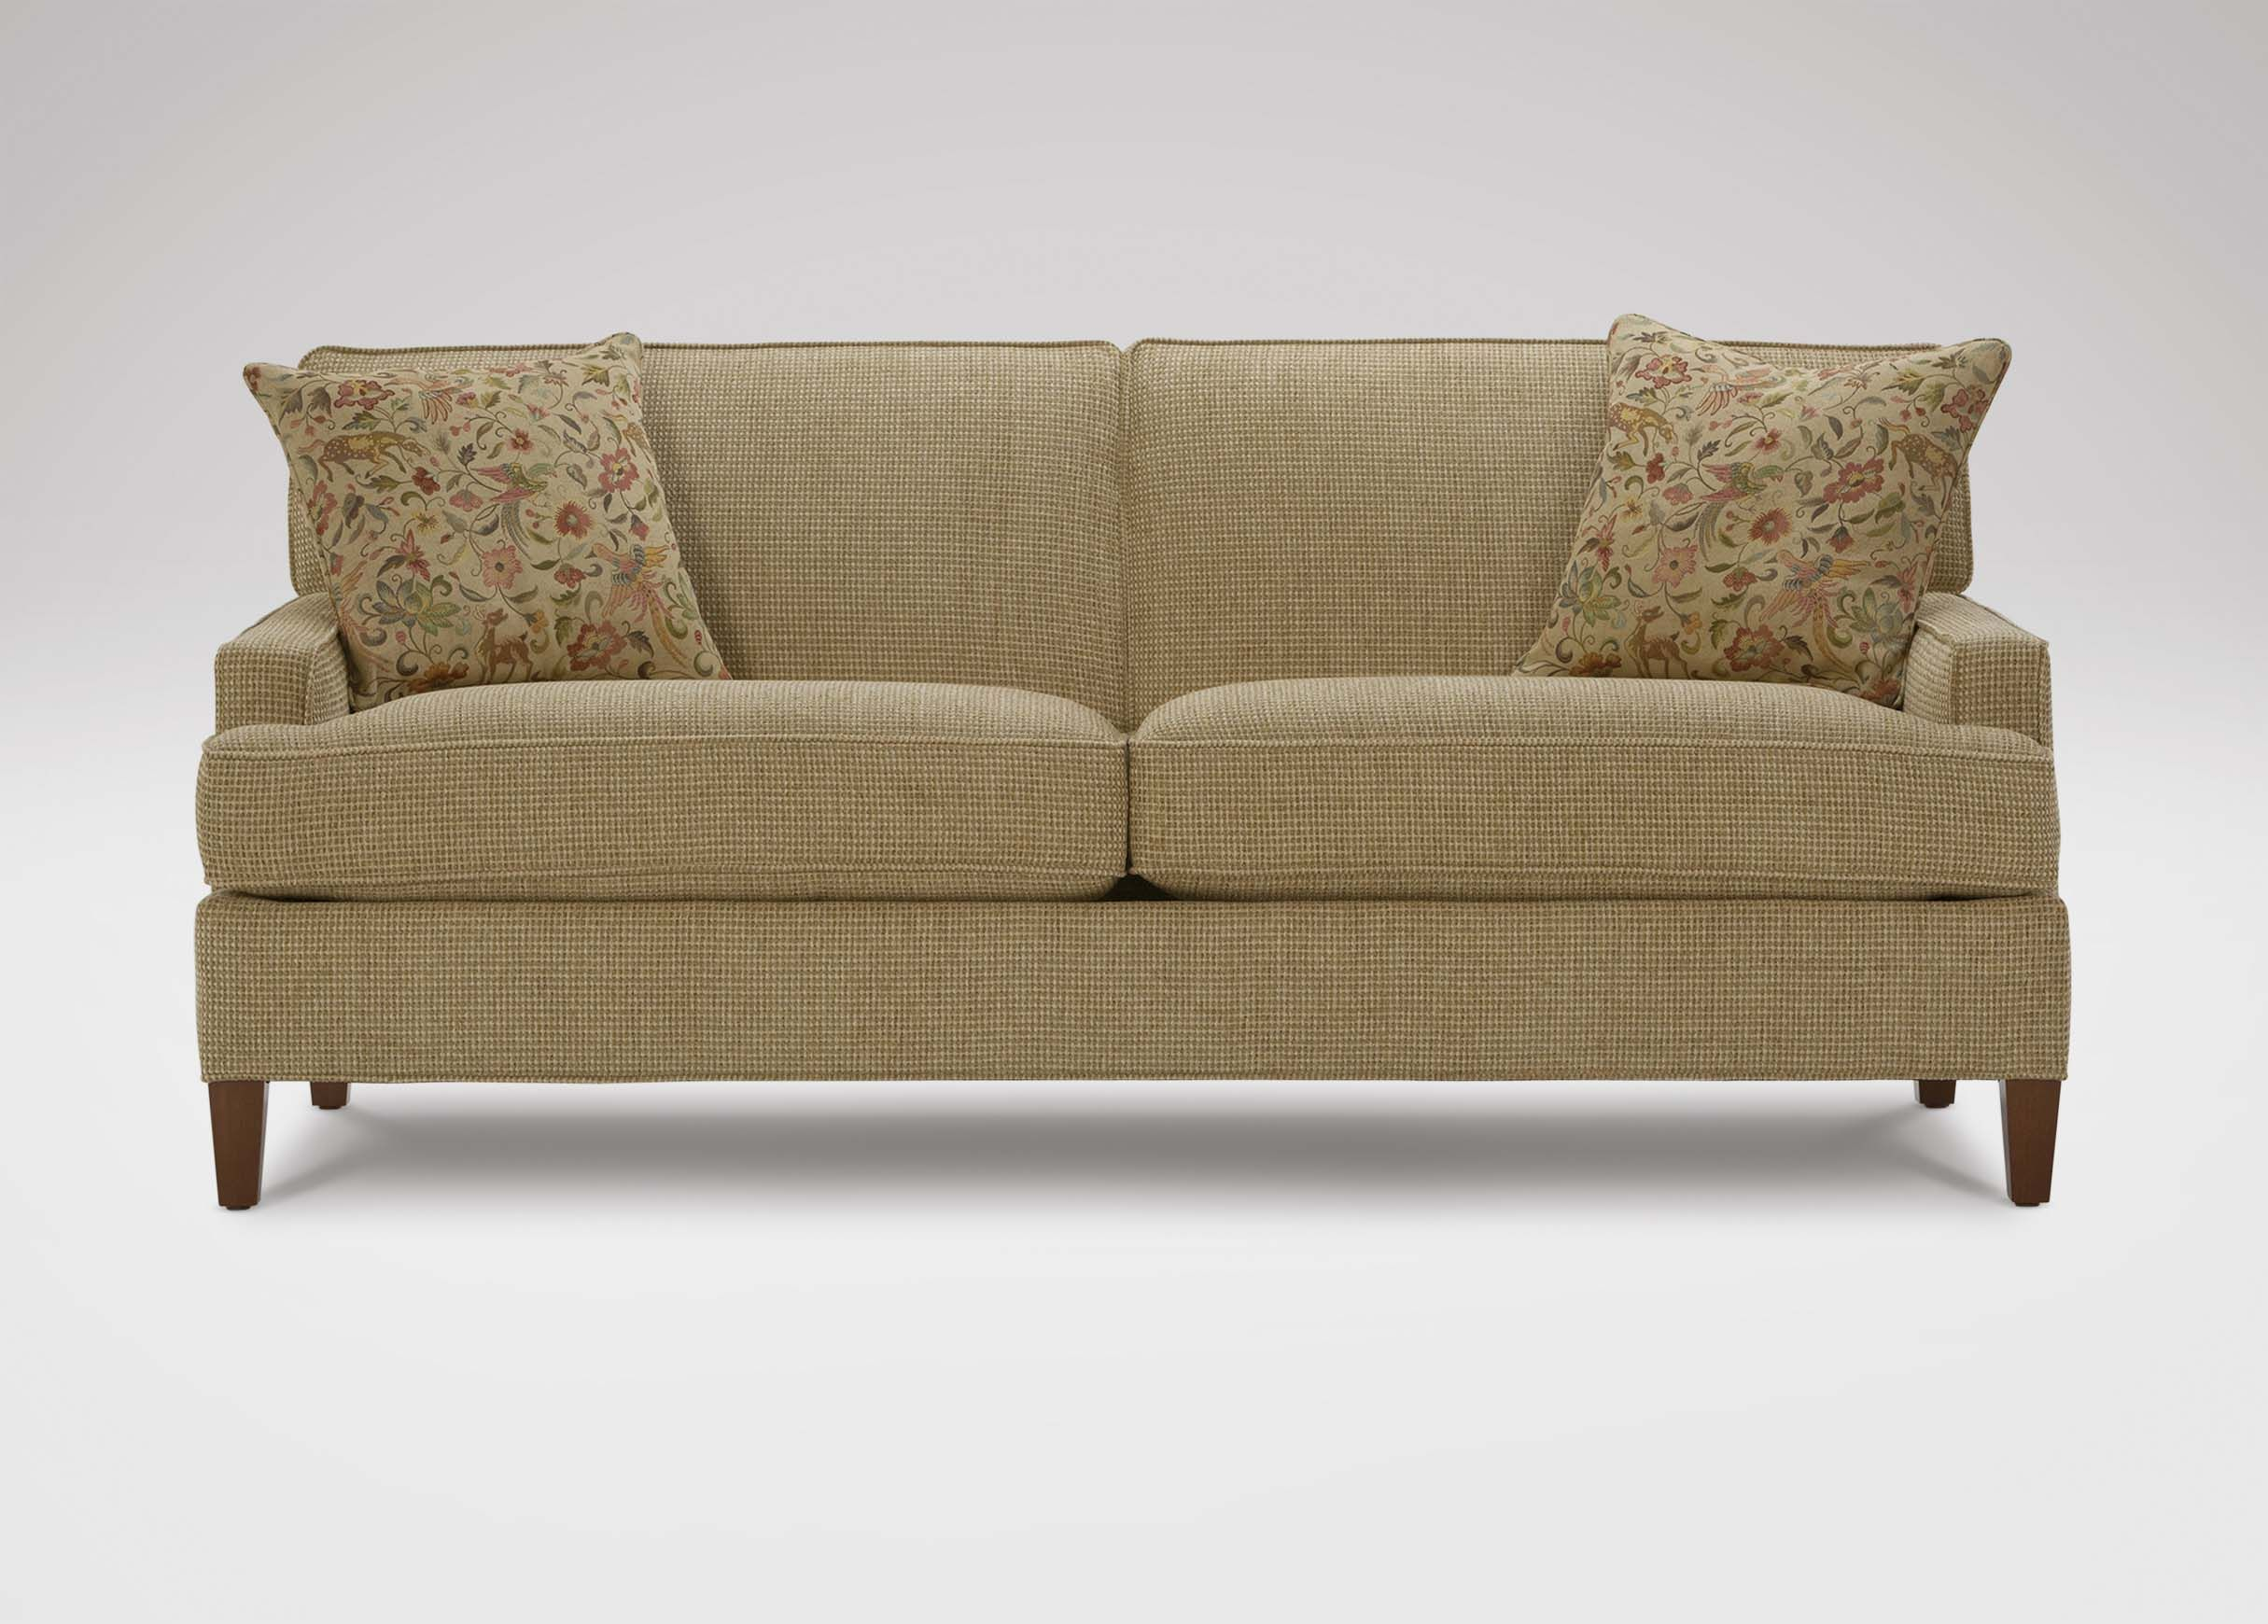 Miraculous Bryant Sofa Ethan Allen A Tight Back But With The Download Free Architecture Designs Scobabritishbridgeorg